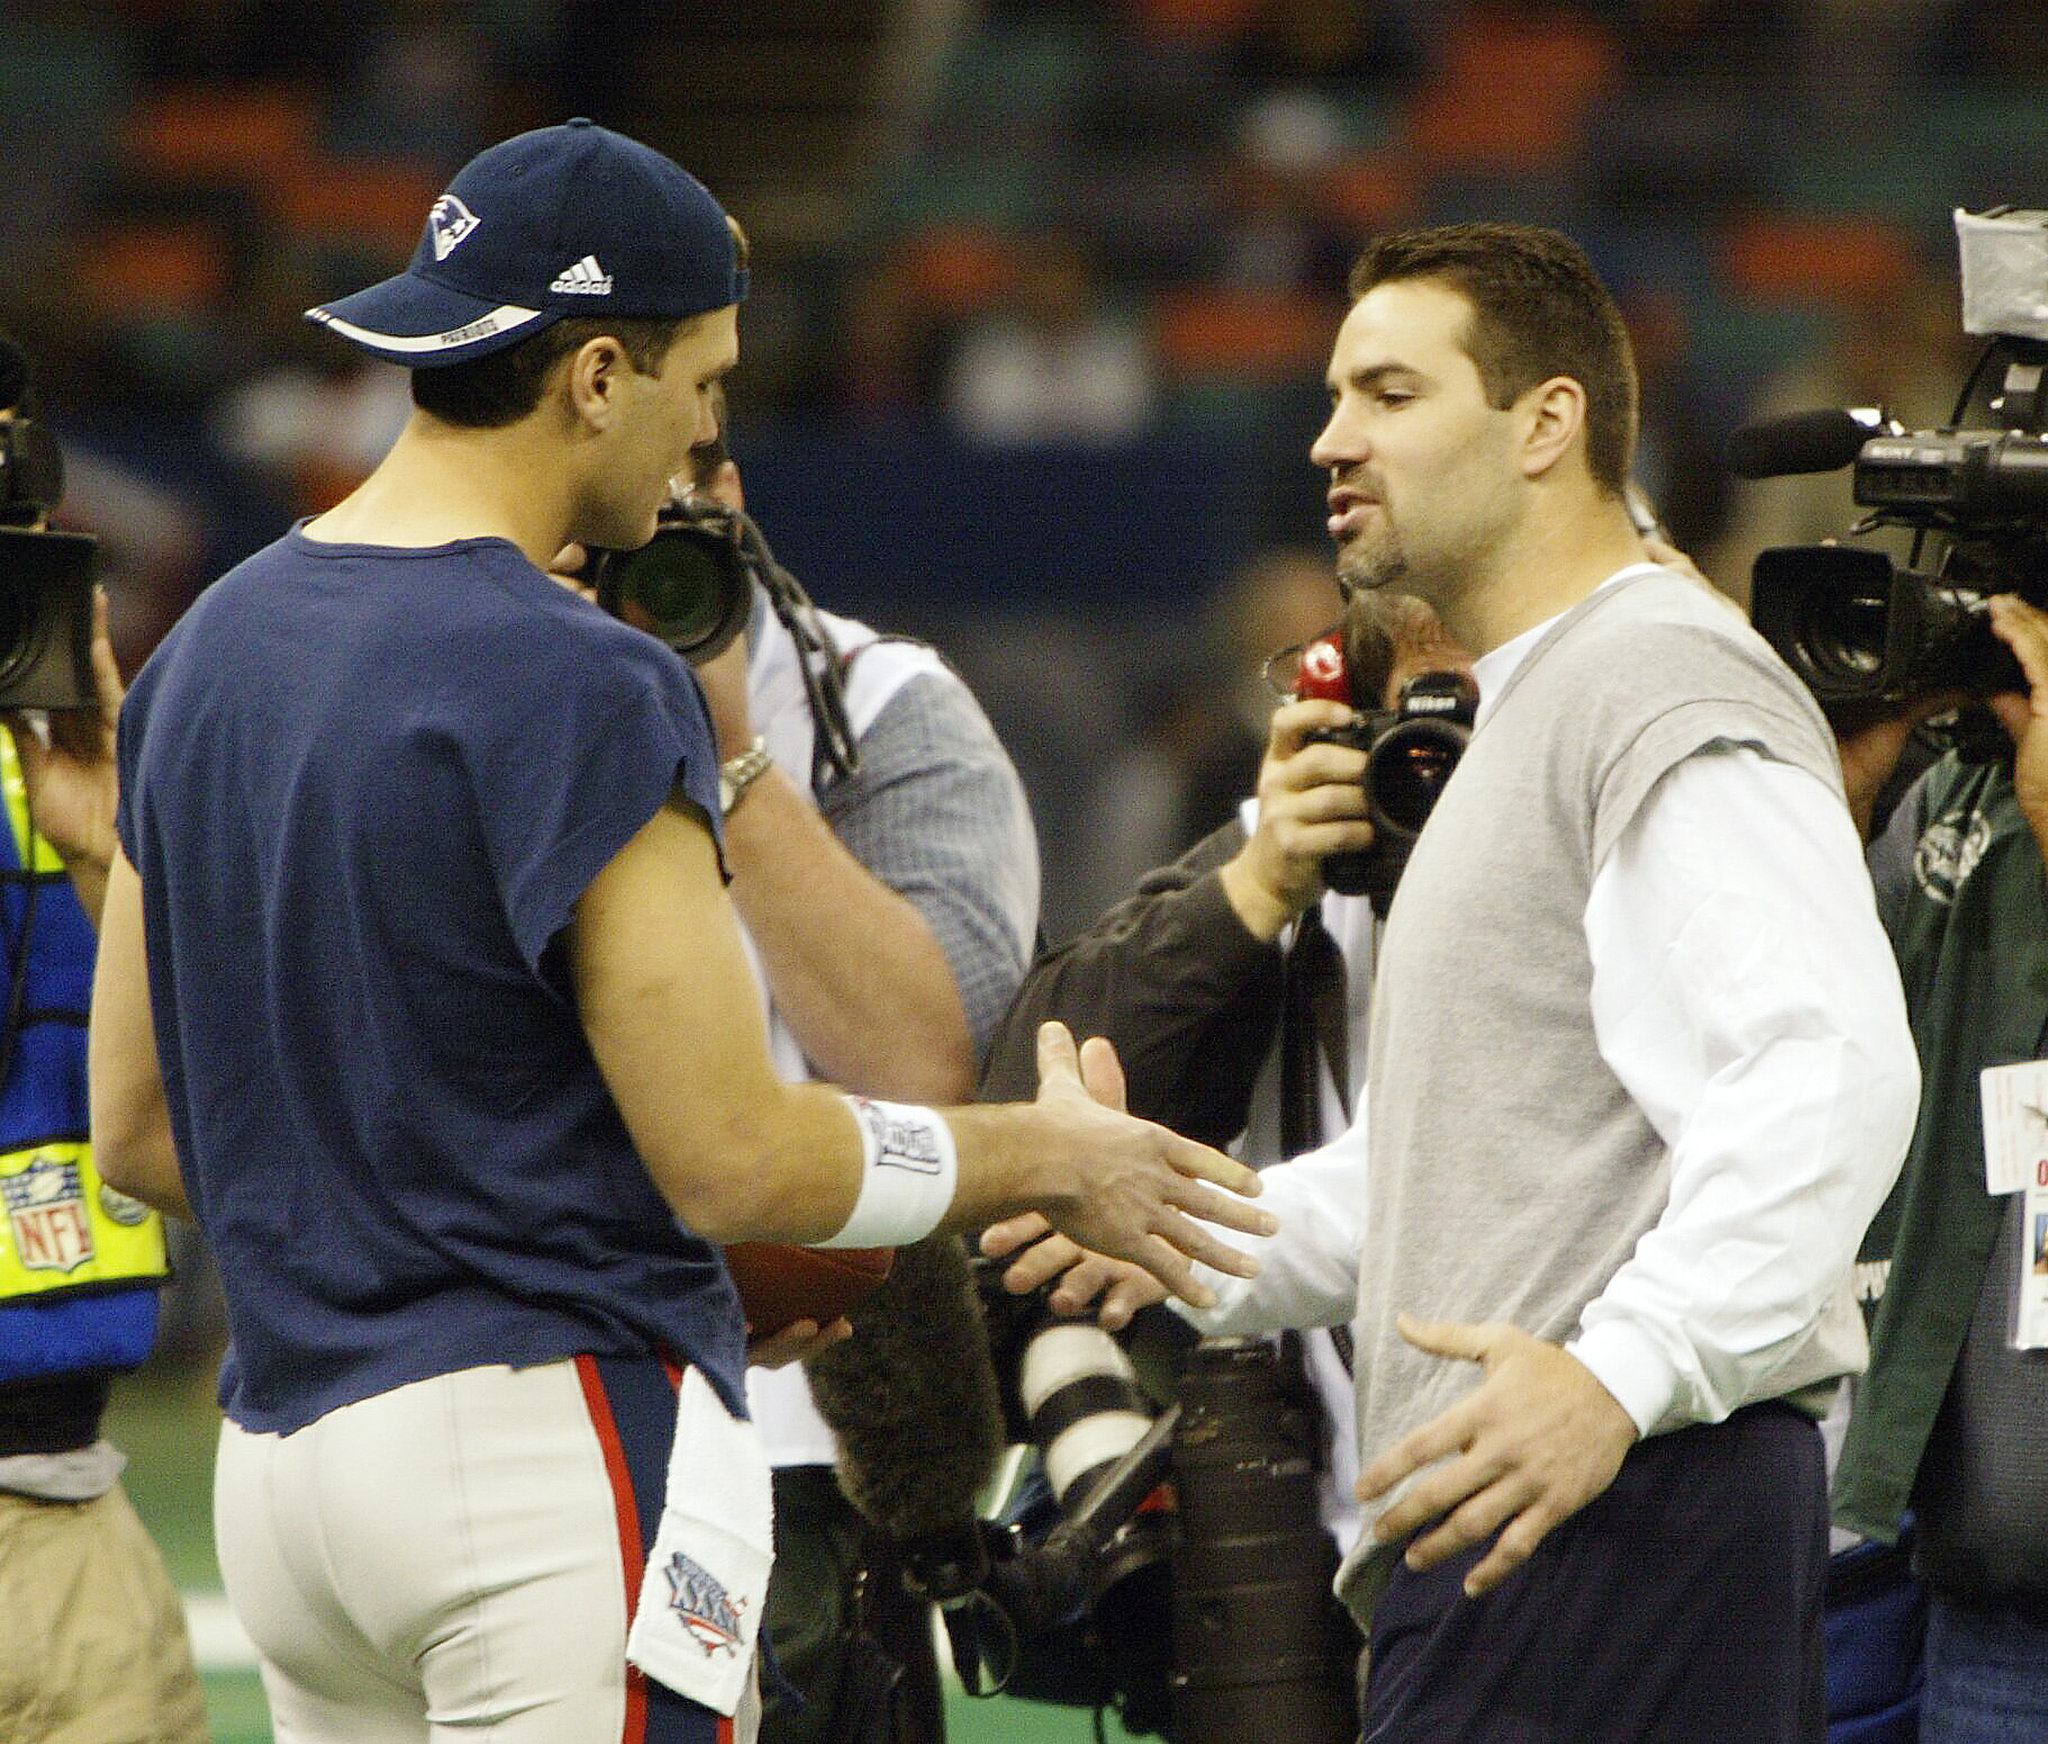 The game in 2002 in Louisiana called for cutoff sleeves from Tom Brady.